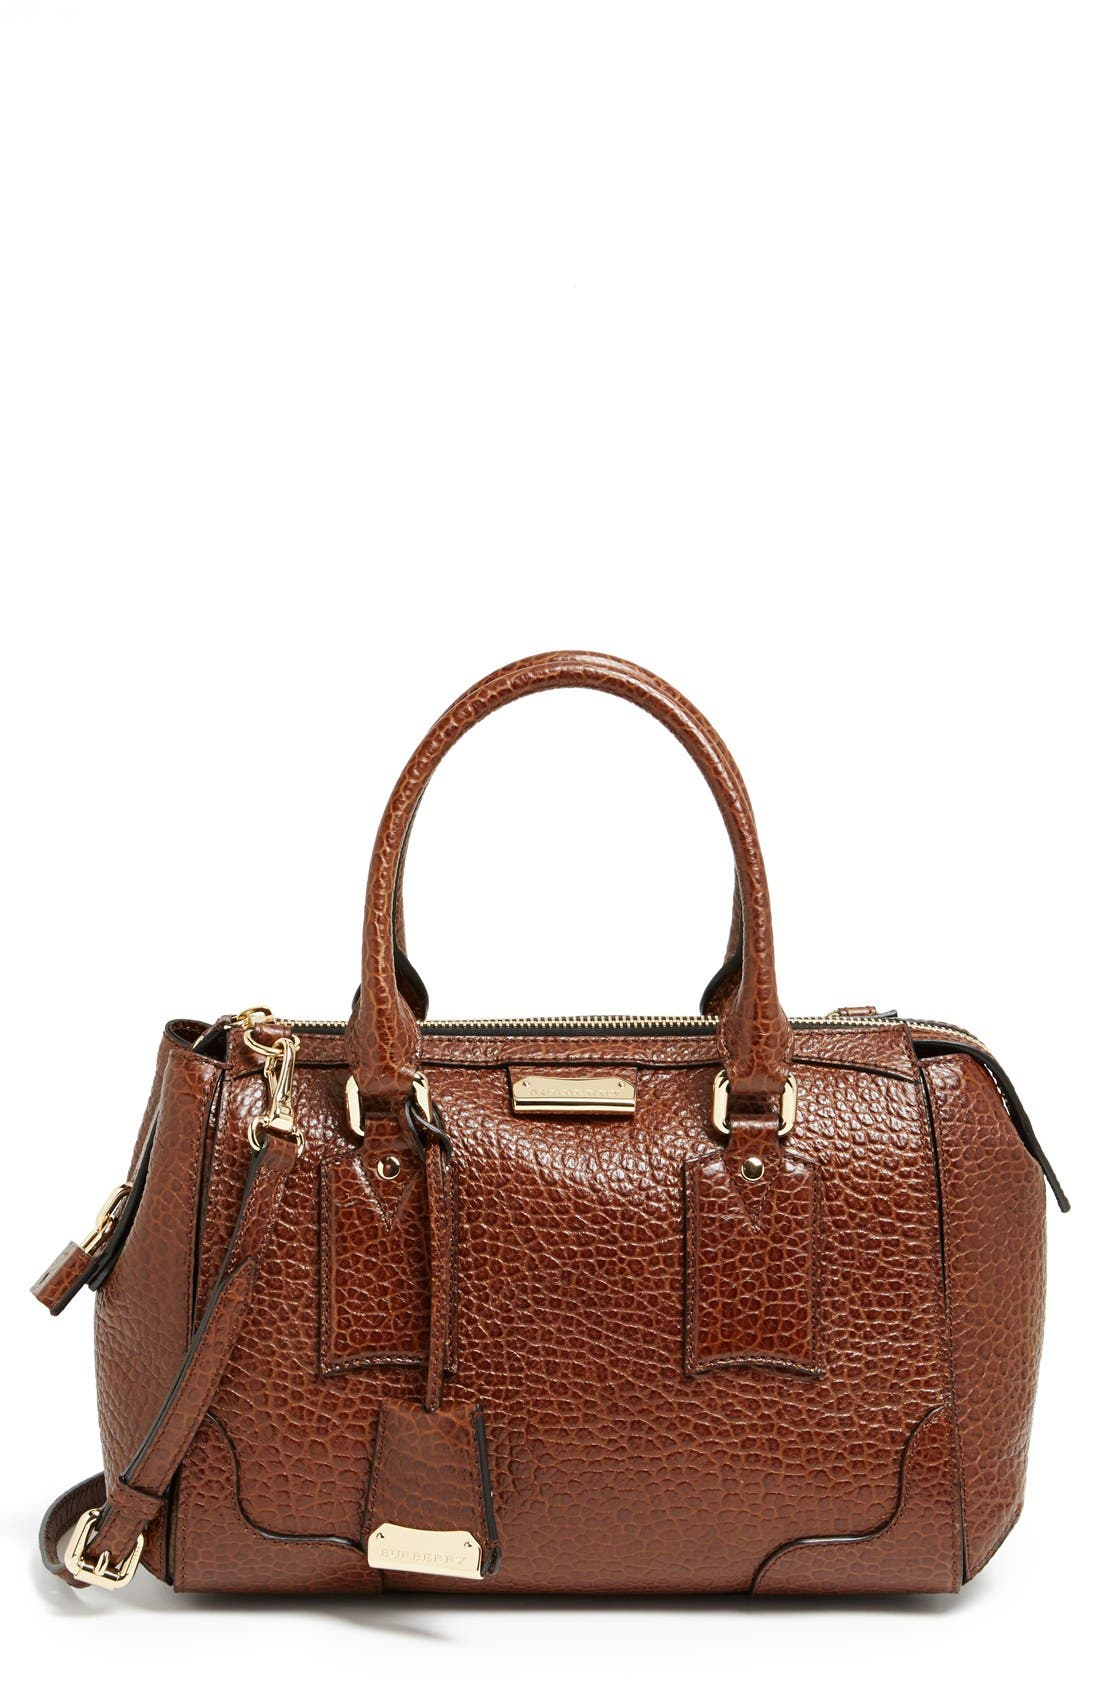 Alternate Image 1 Selected - Burberry 'Small Gladstone' Leather Satchel